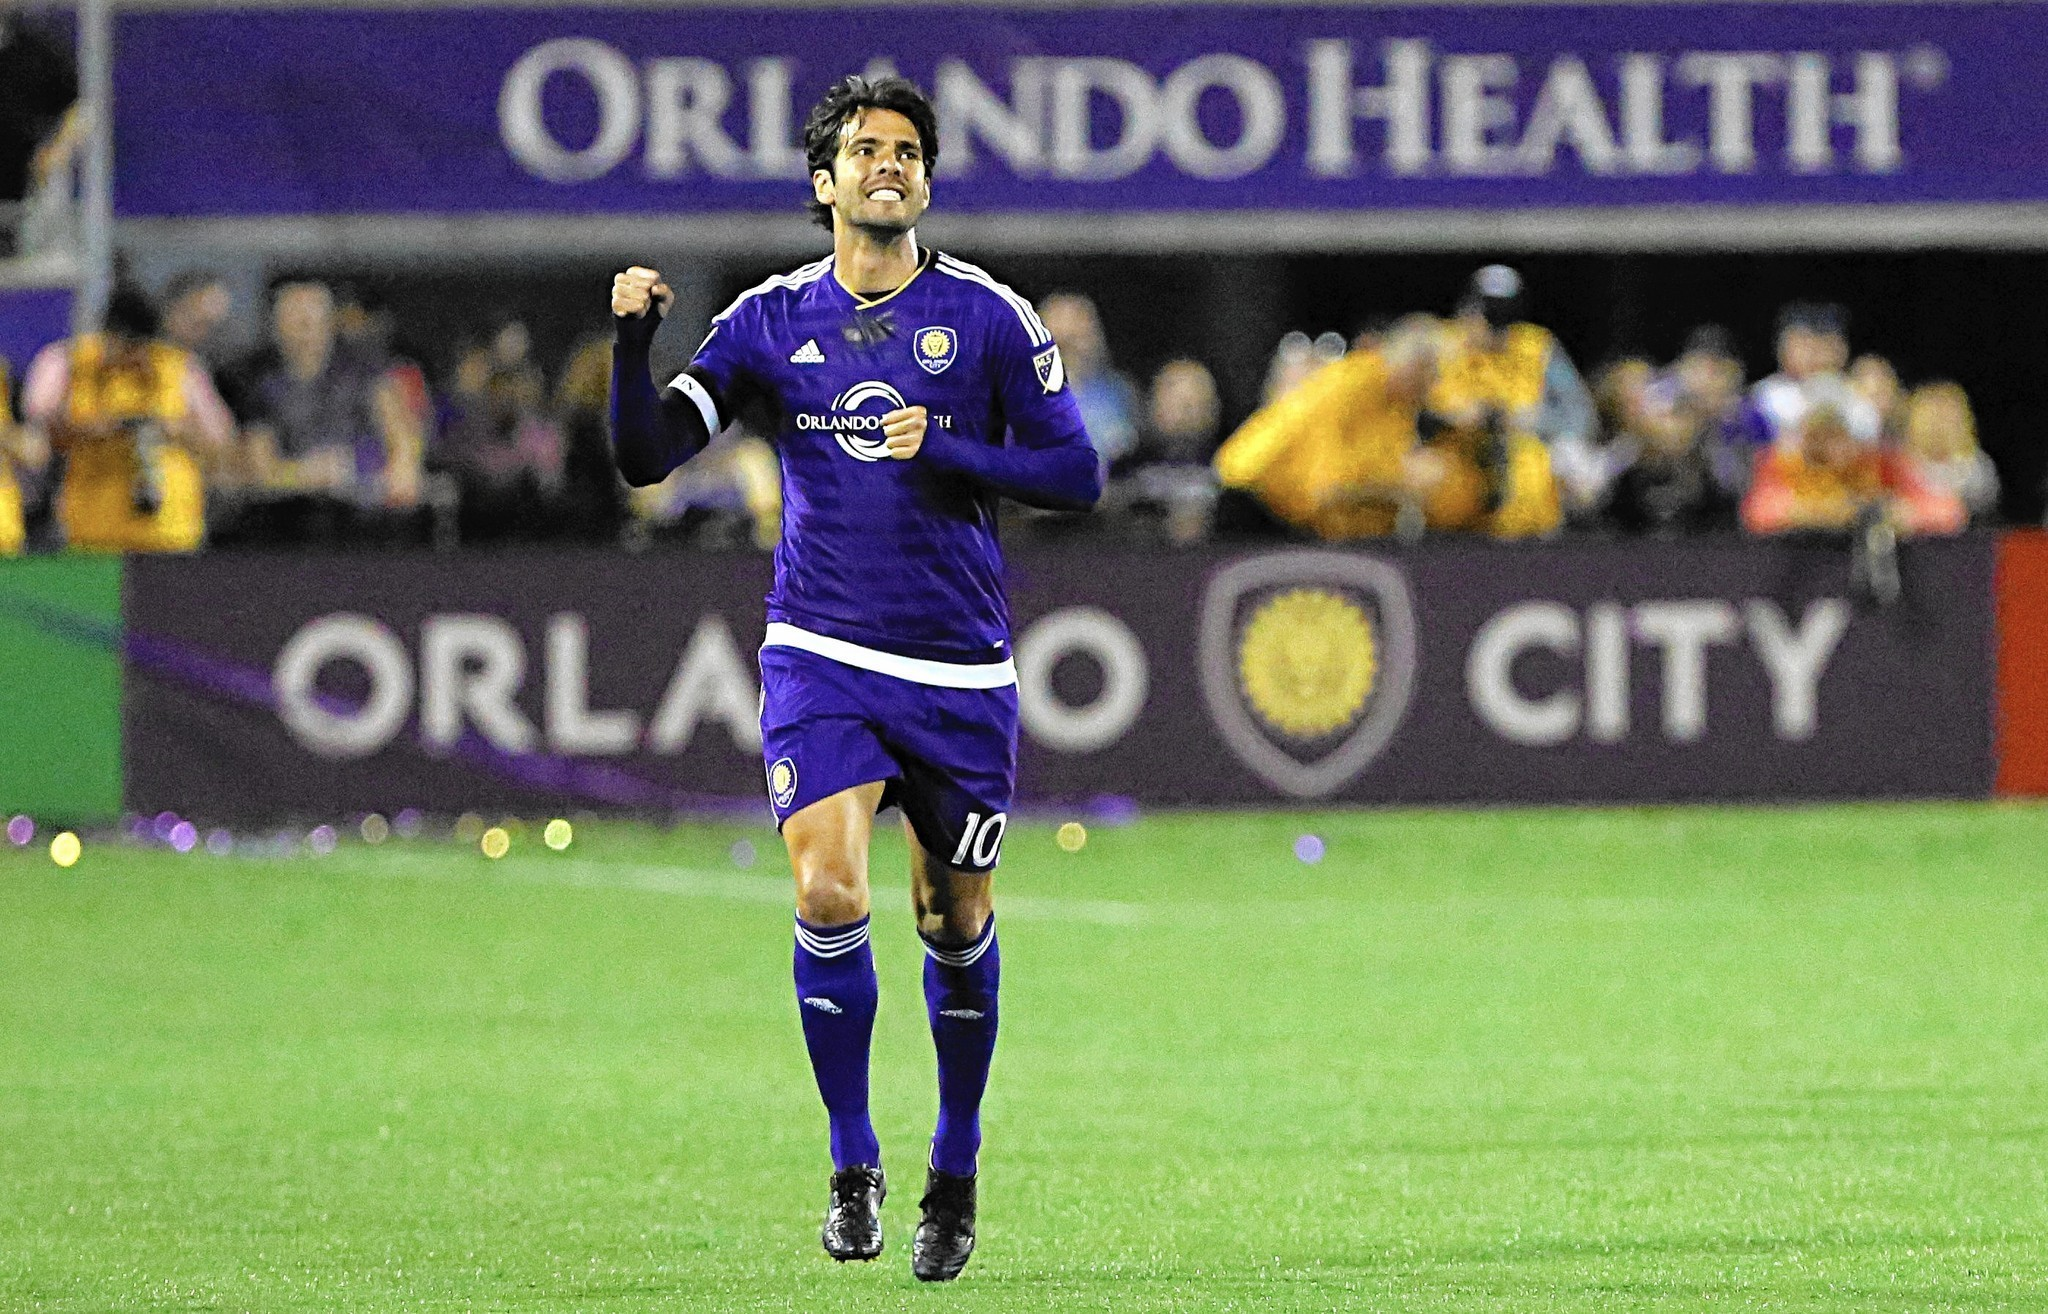 Os-kaka-luke-boden-what-went-wrong-in-orlando-city-s-loss-to-sporting-kc